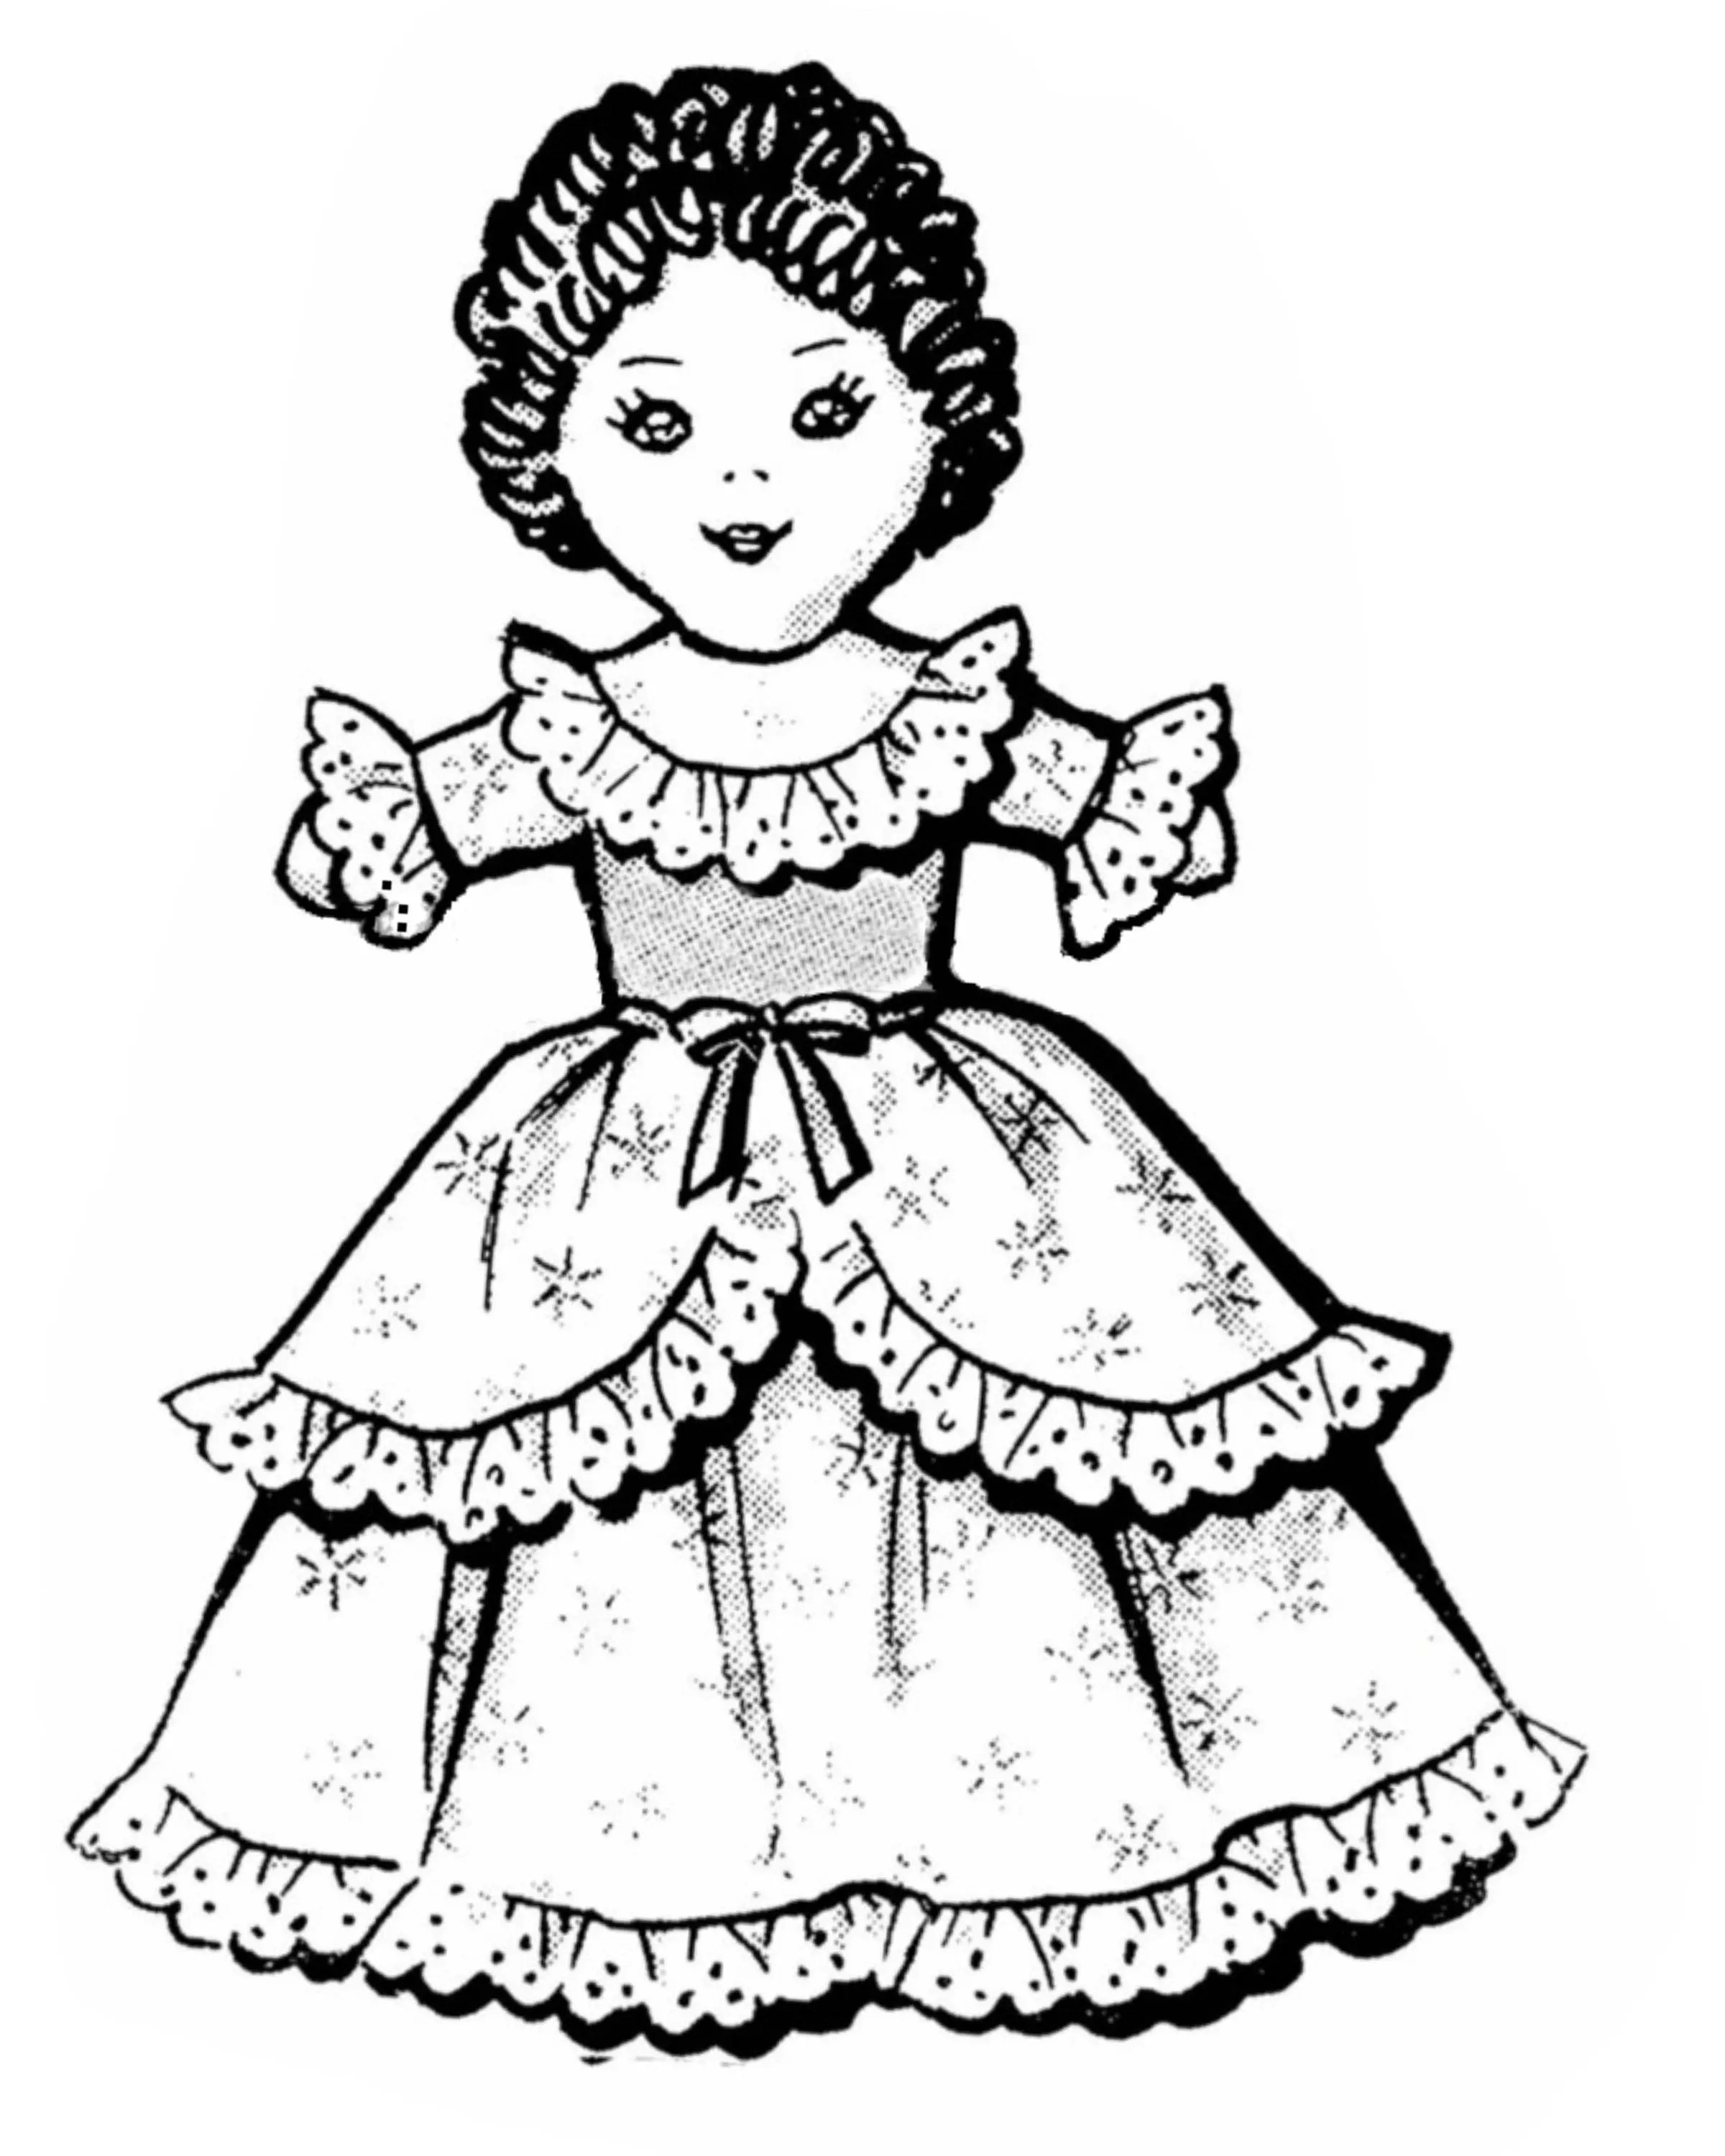 Cinderella Topsy Turvy Doll Pattern or Upside Down Cloth